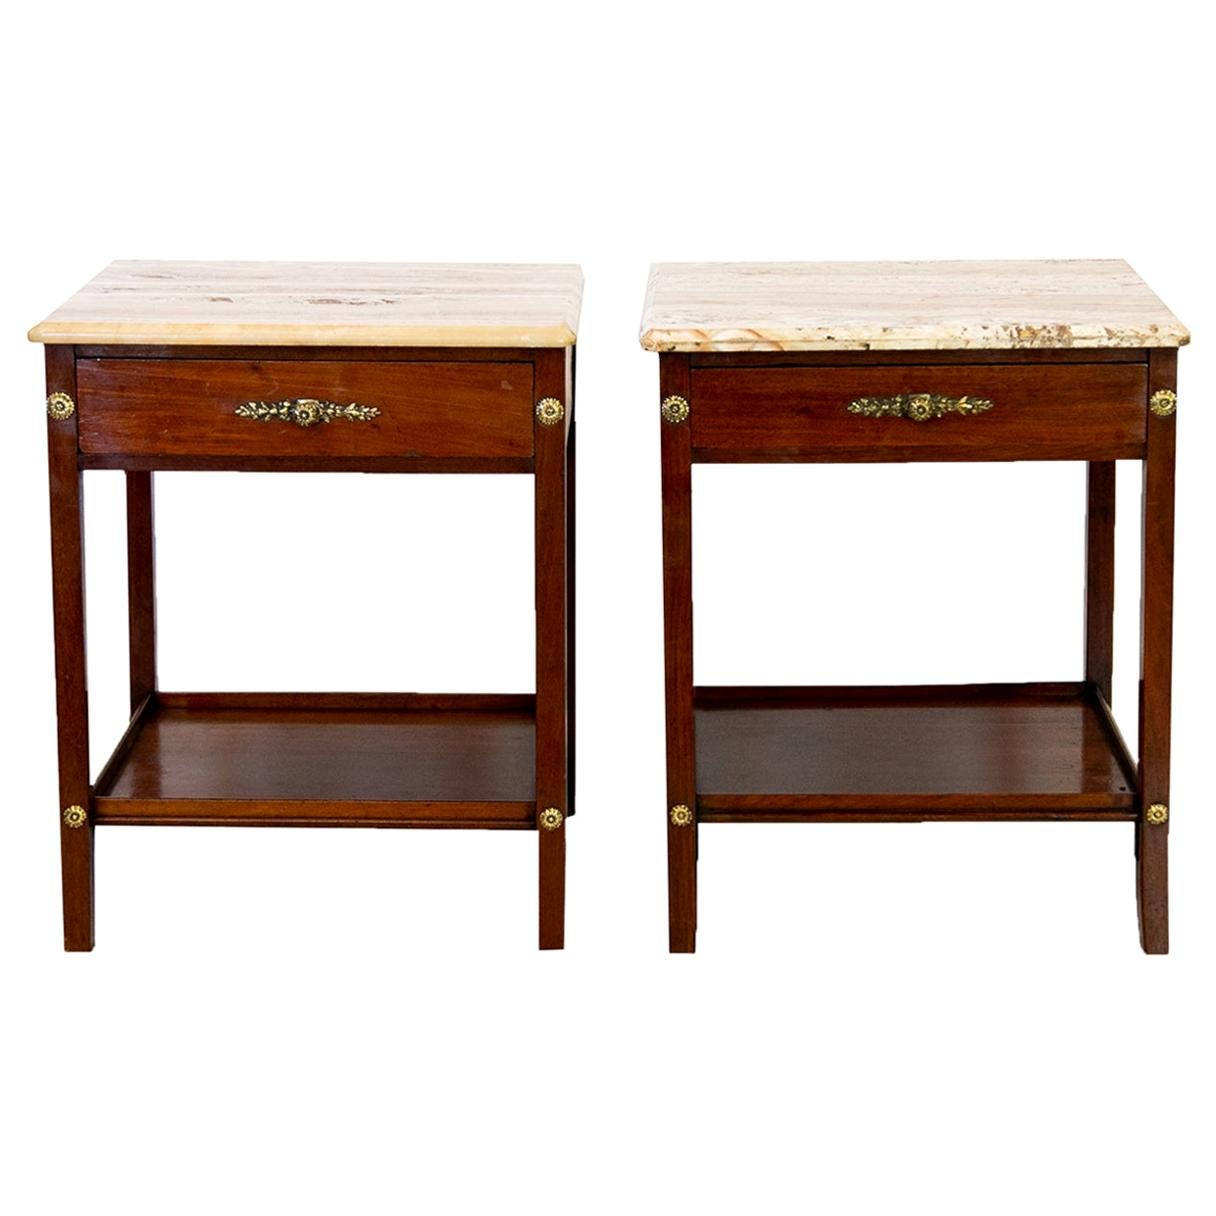 Pair of Marble-Top End Tables